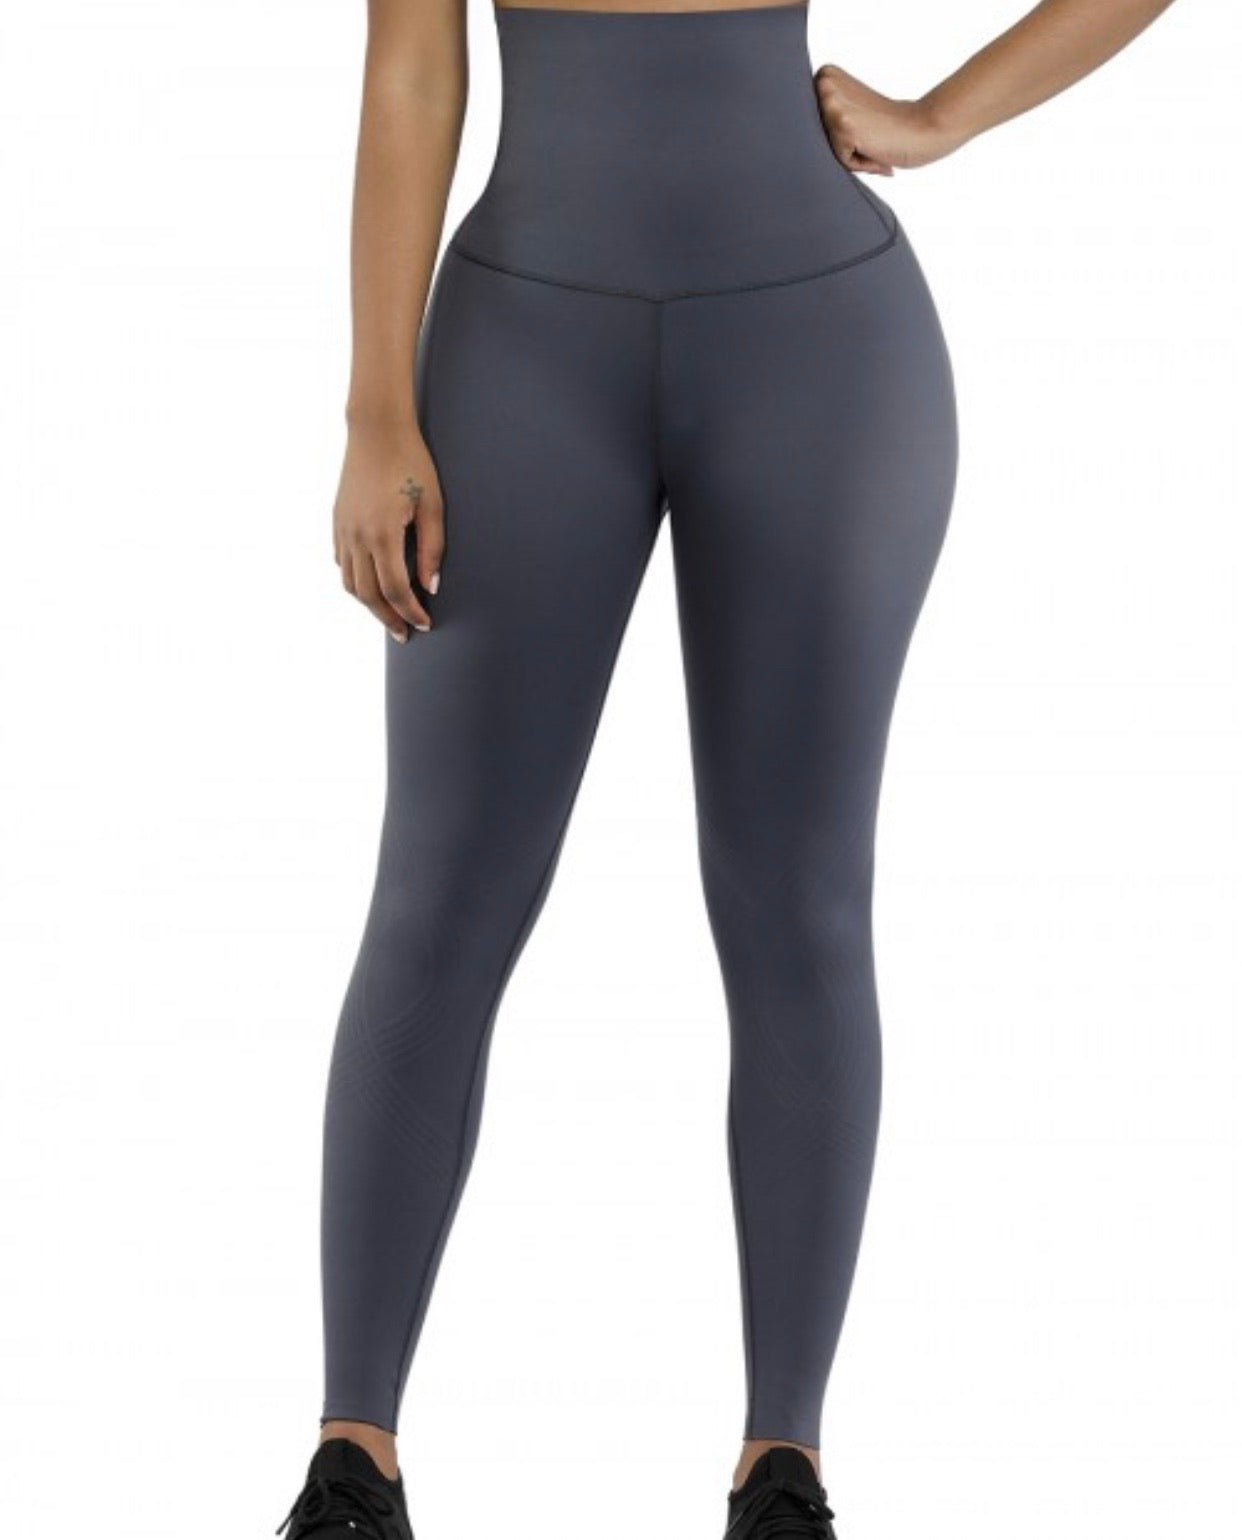 3D Leila's High Grey compression leggings